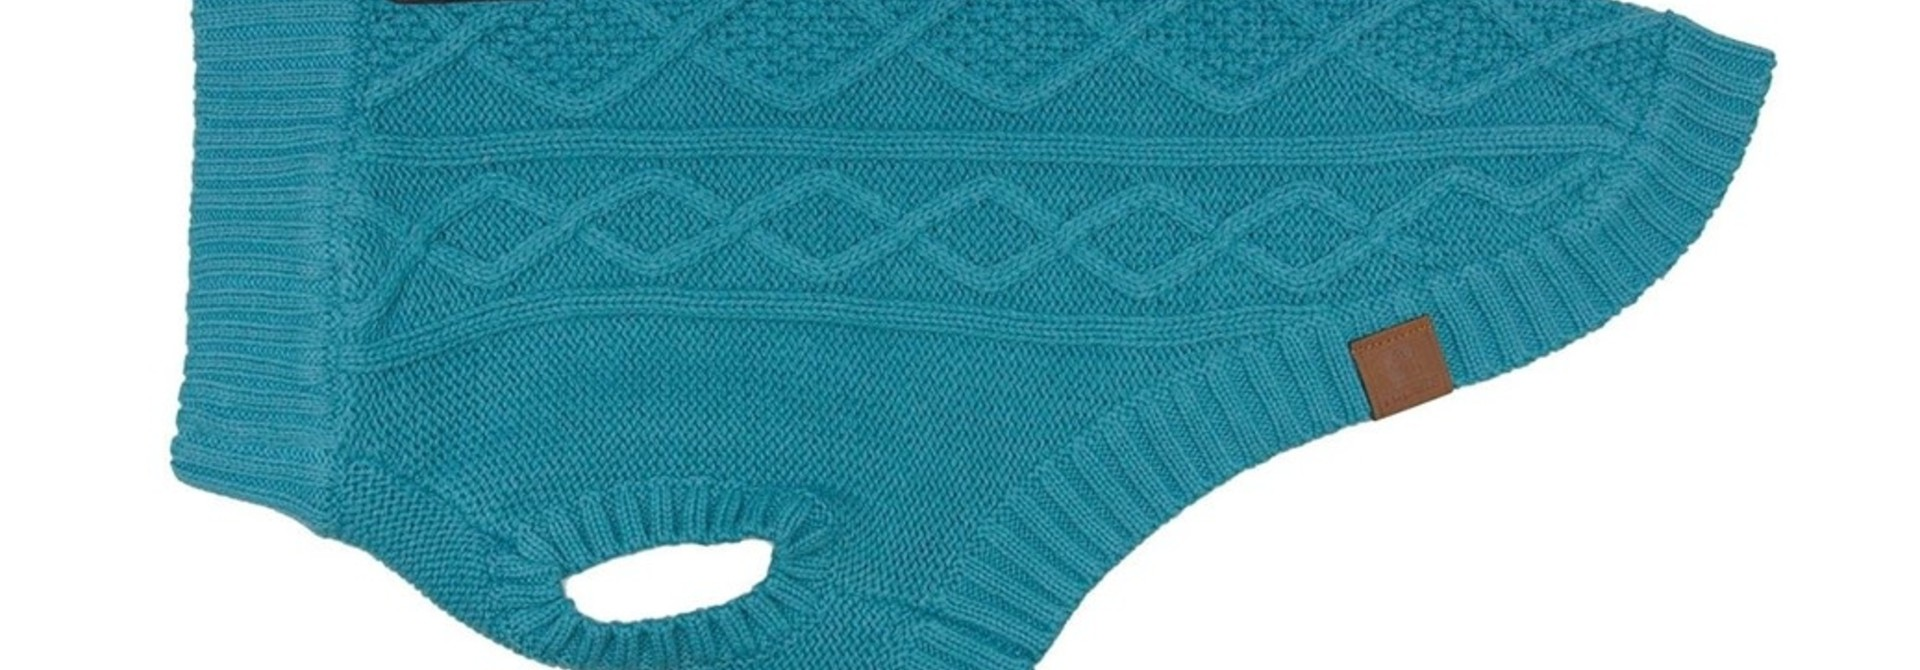 Cable Sweater XS Dark Teal